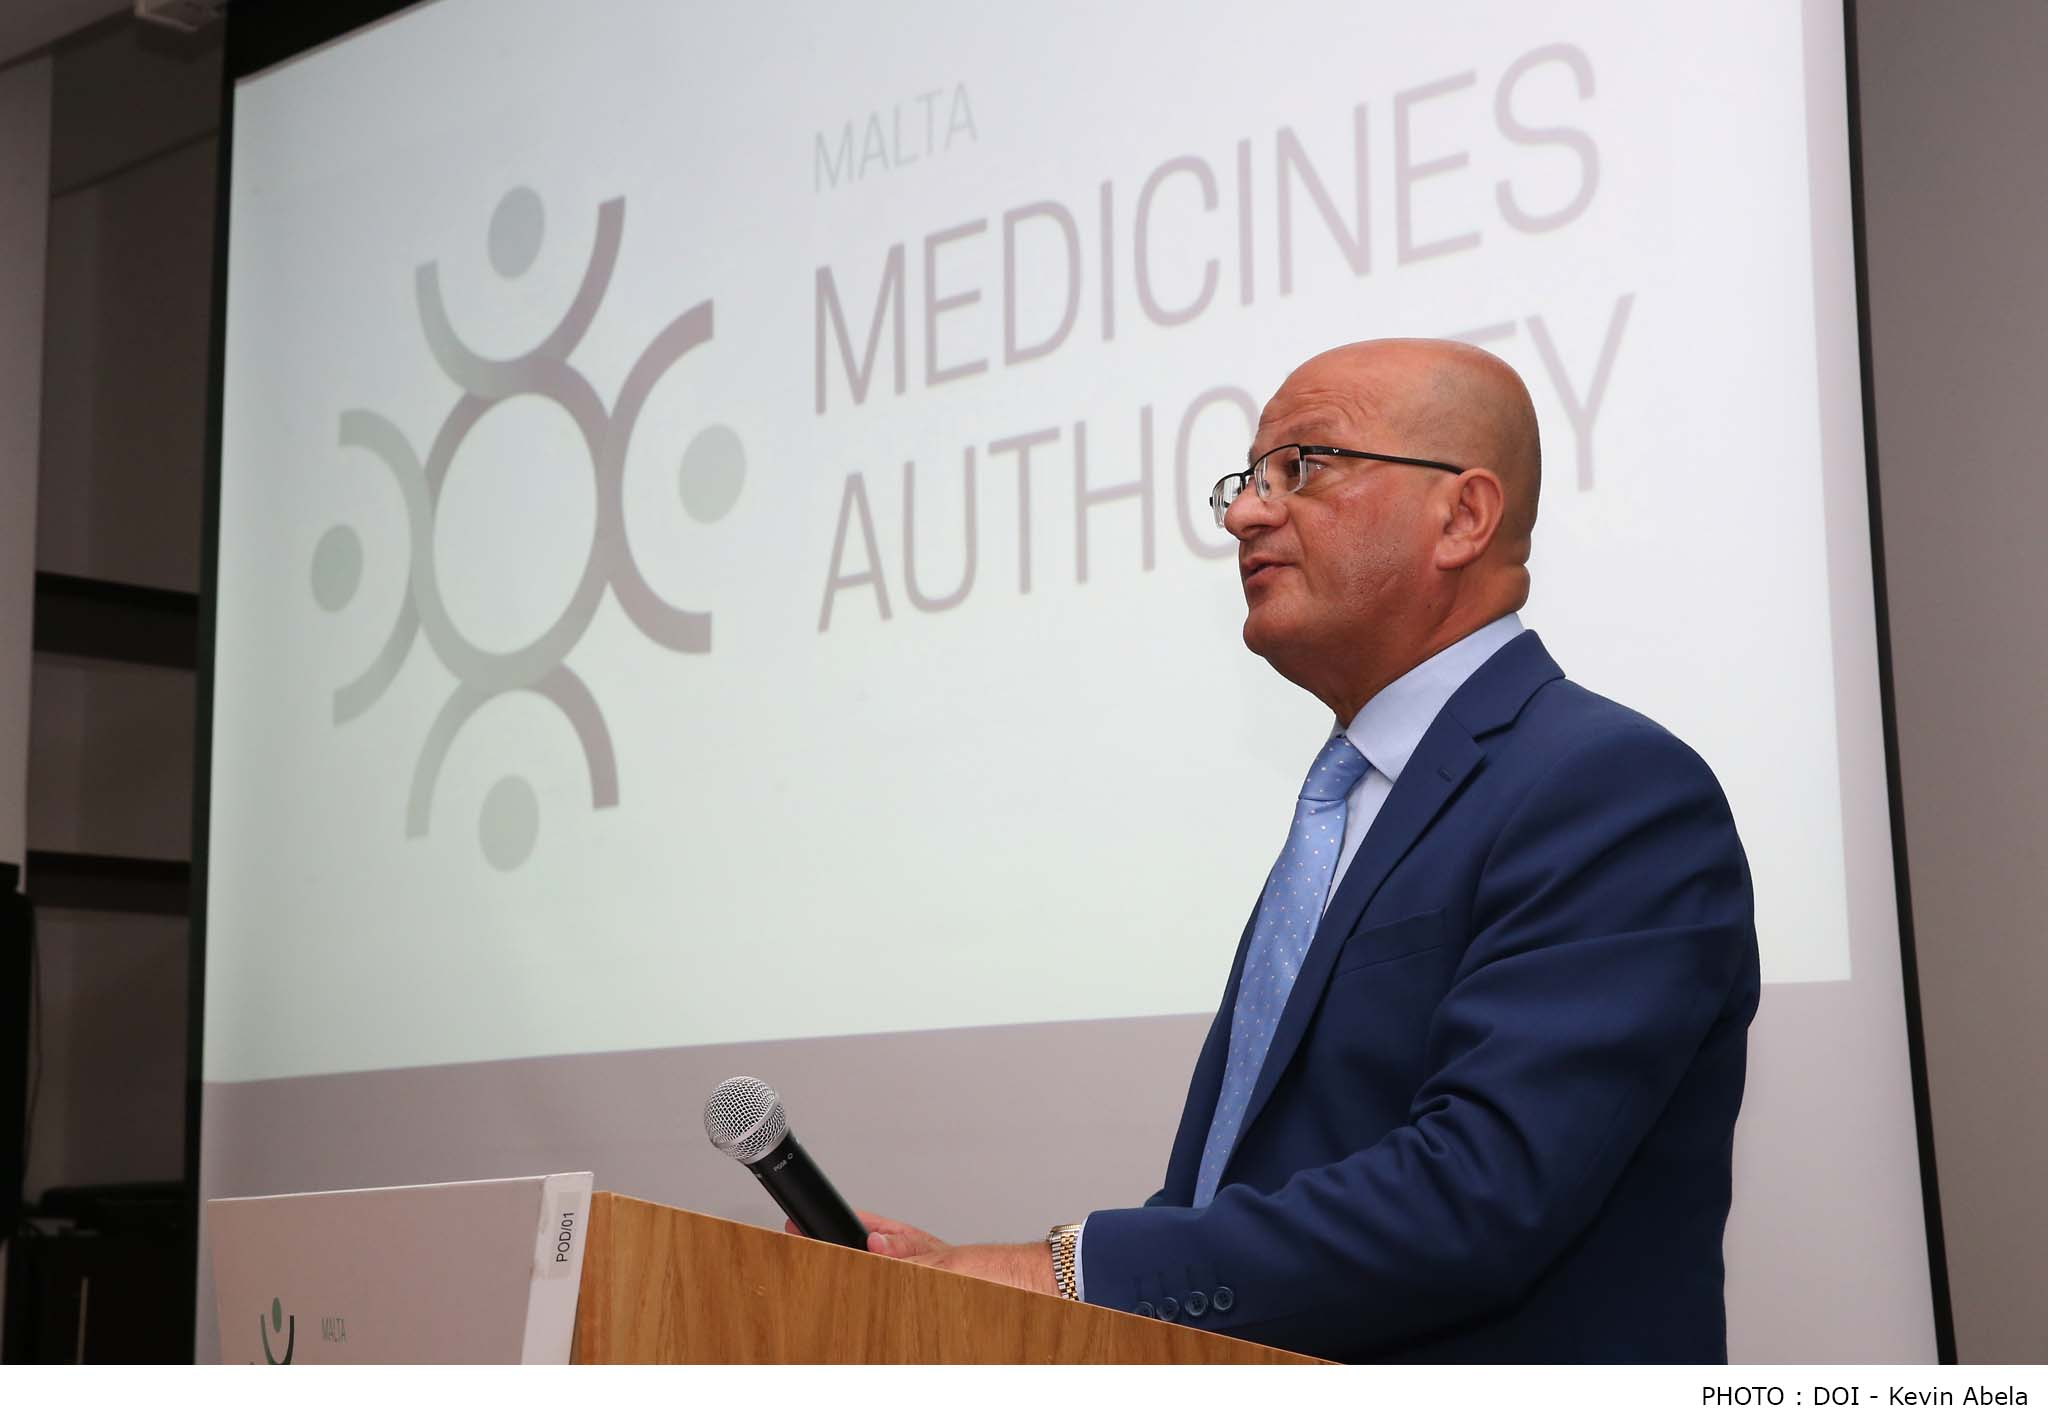 PRESS RELEASE BY THE PARLIAMENTARY SECRETARIAT FOR CONSUMER RIGHTS, PUBLIC CLEANSING AND SUPPORT FOR THE CAPITAL CITY: An open day at the Malta Medicines Authority to recognise the advancements in pharmaceutical and regulatory sciences